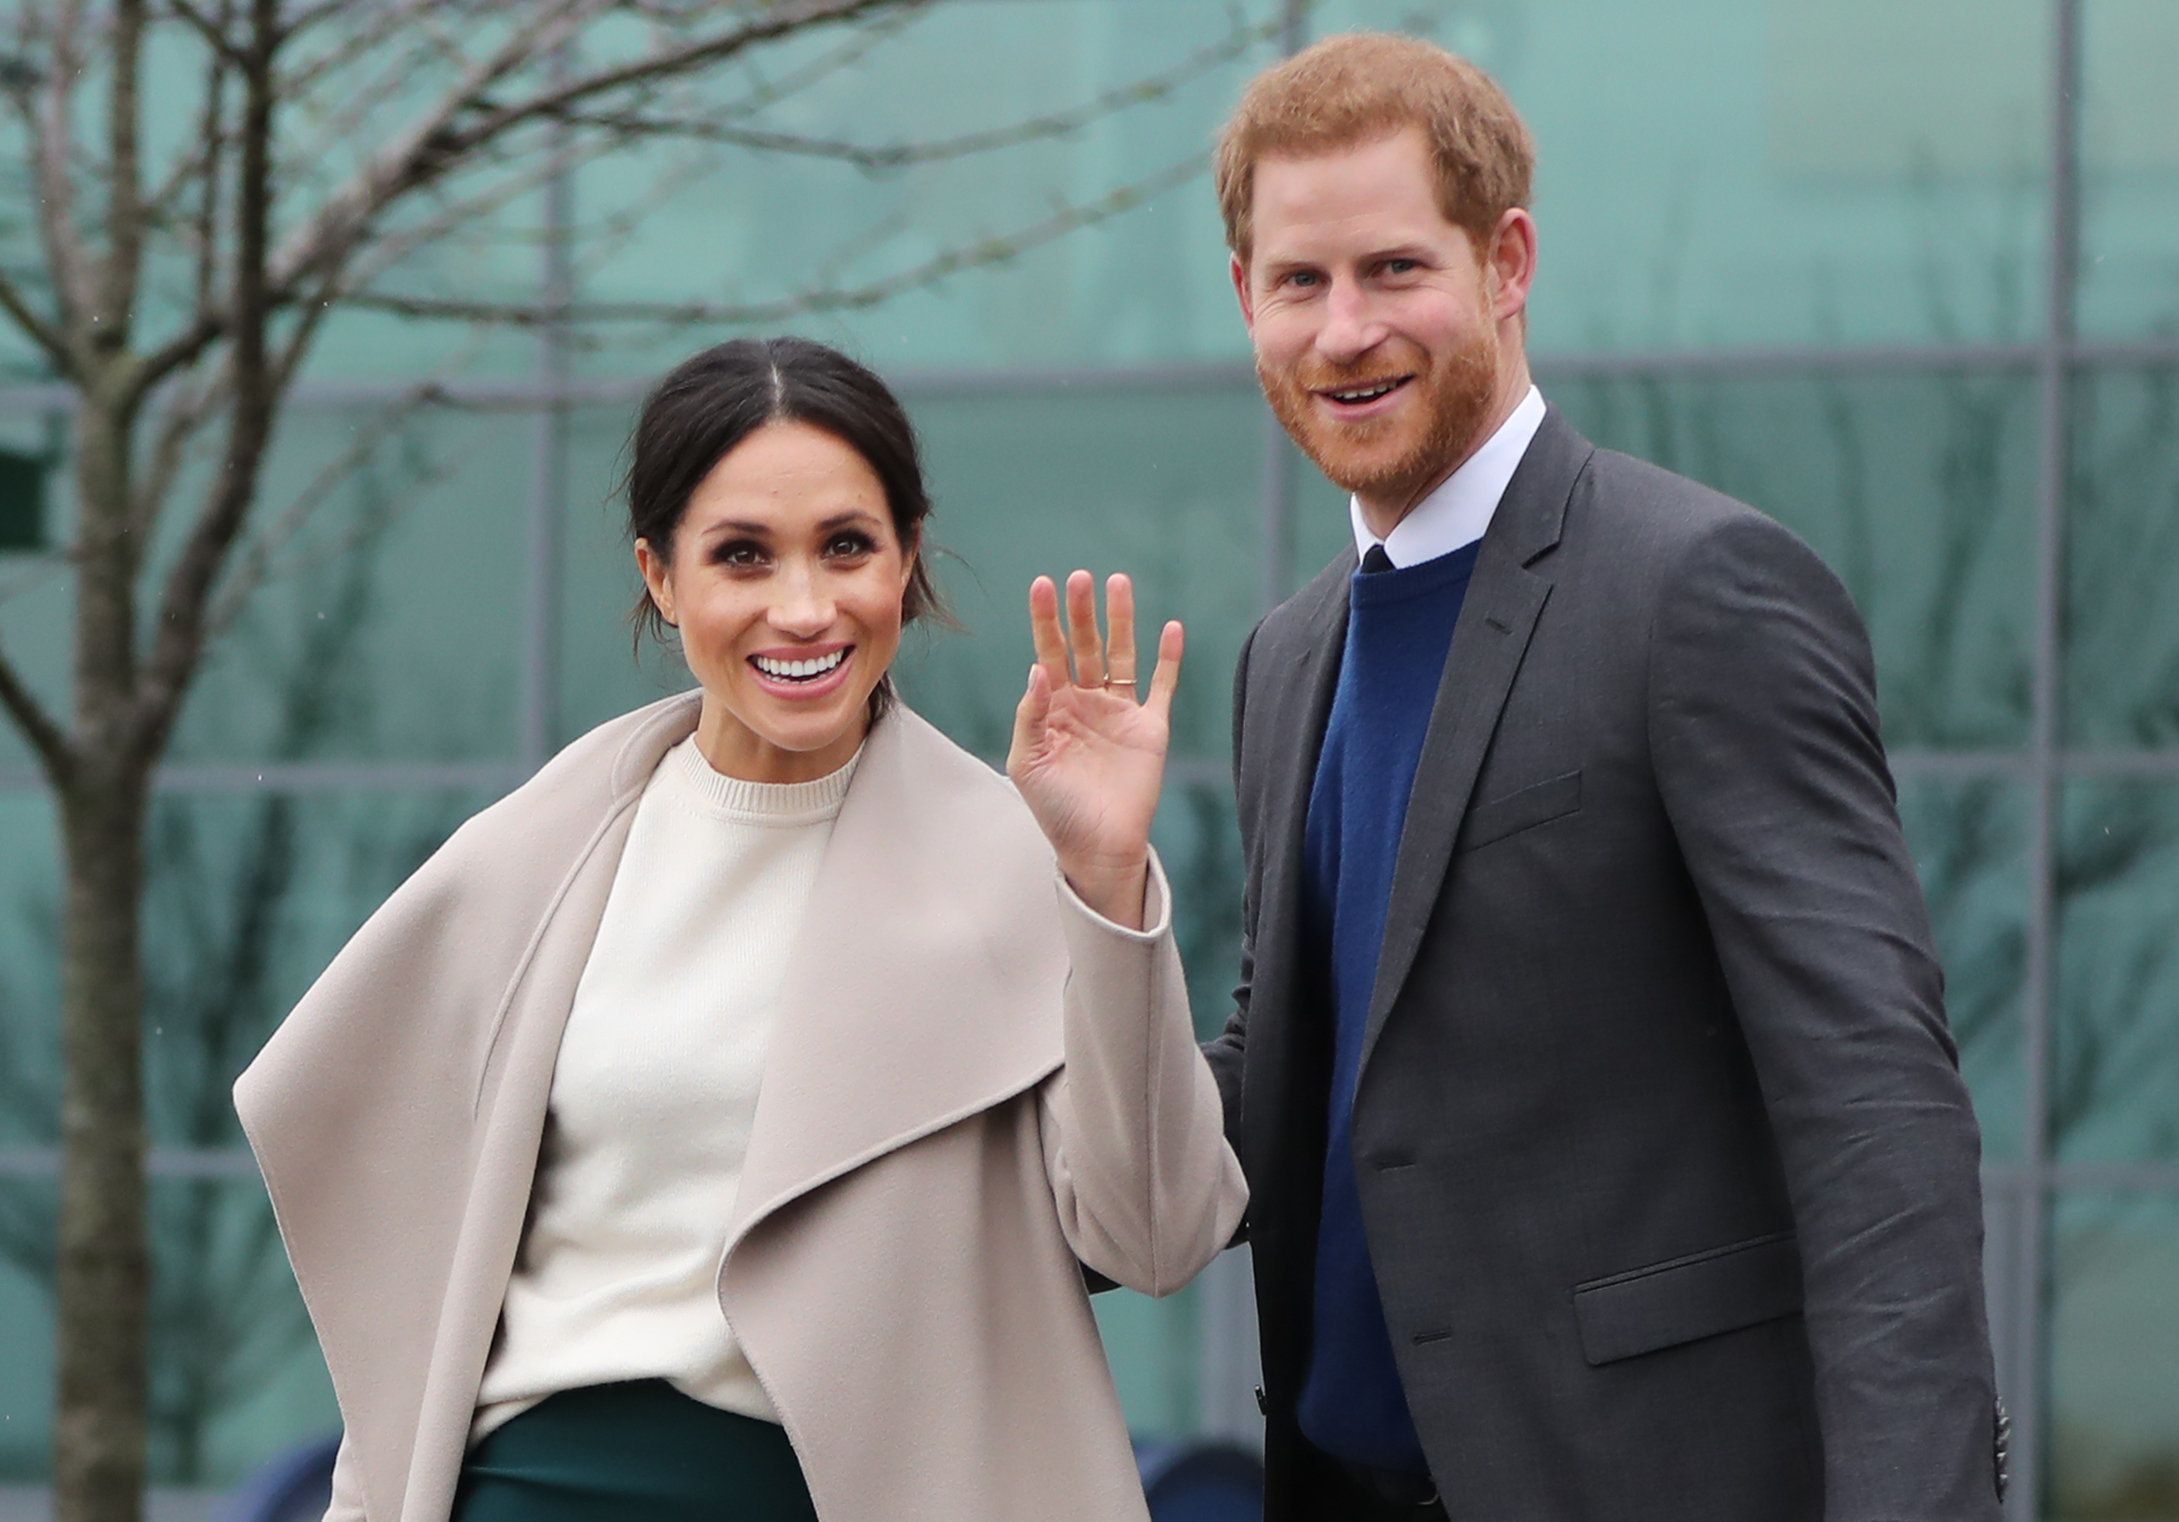 The Royal-Engagement Photographer Is Now the Royal-Wedding Photographer